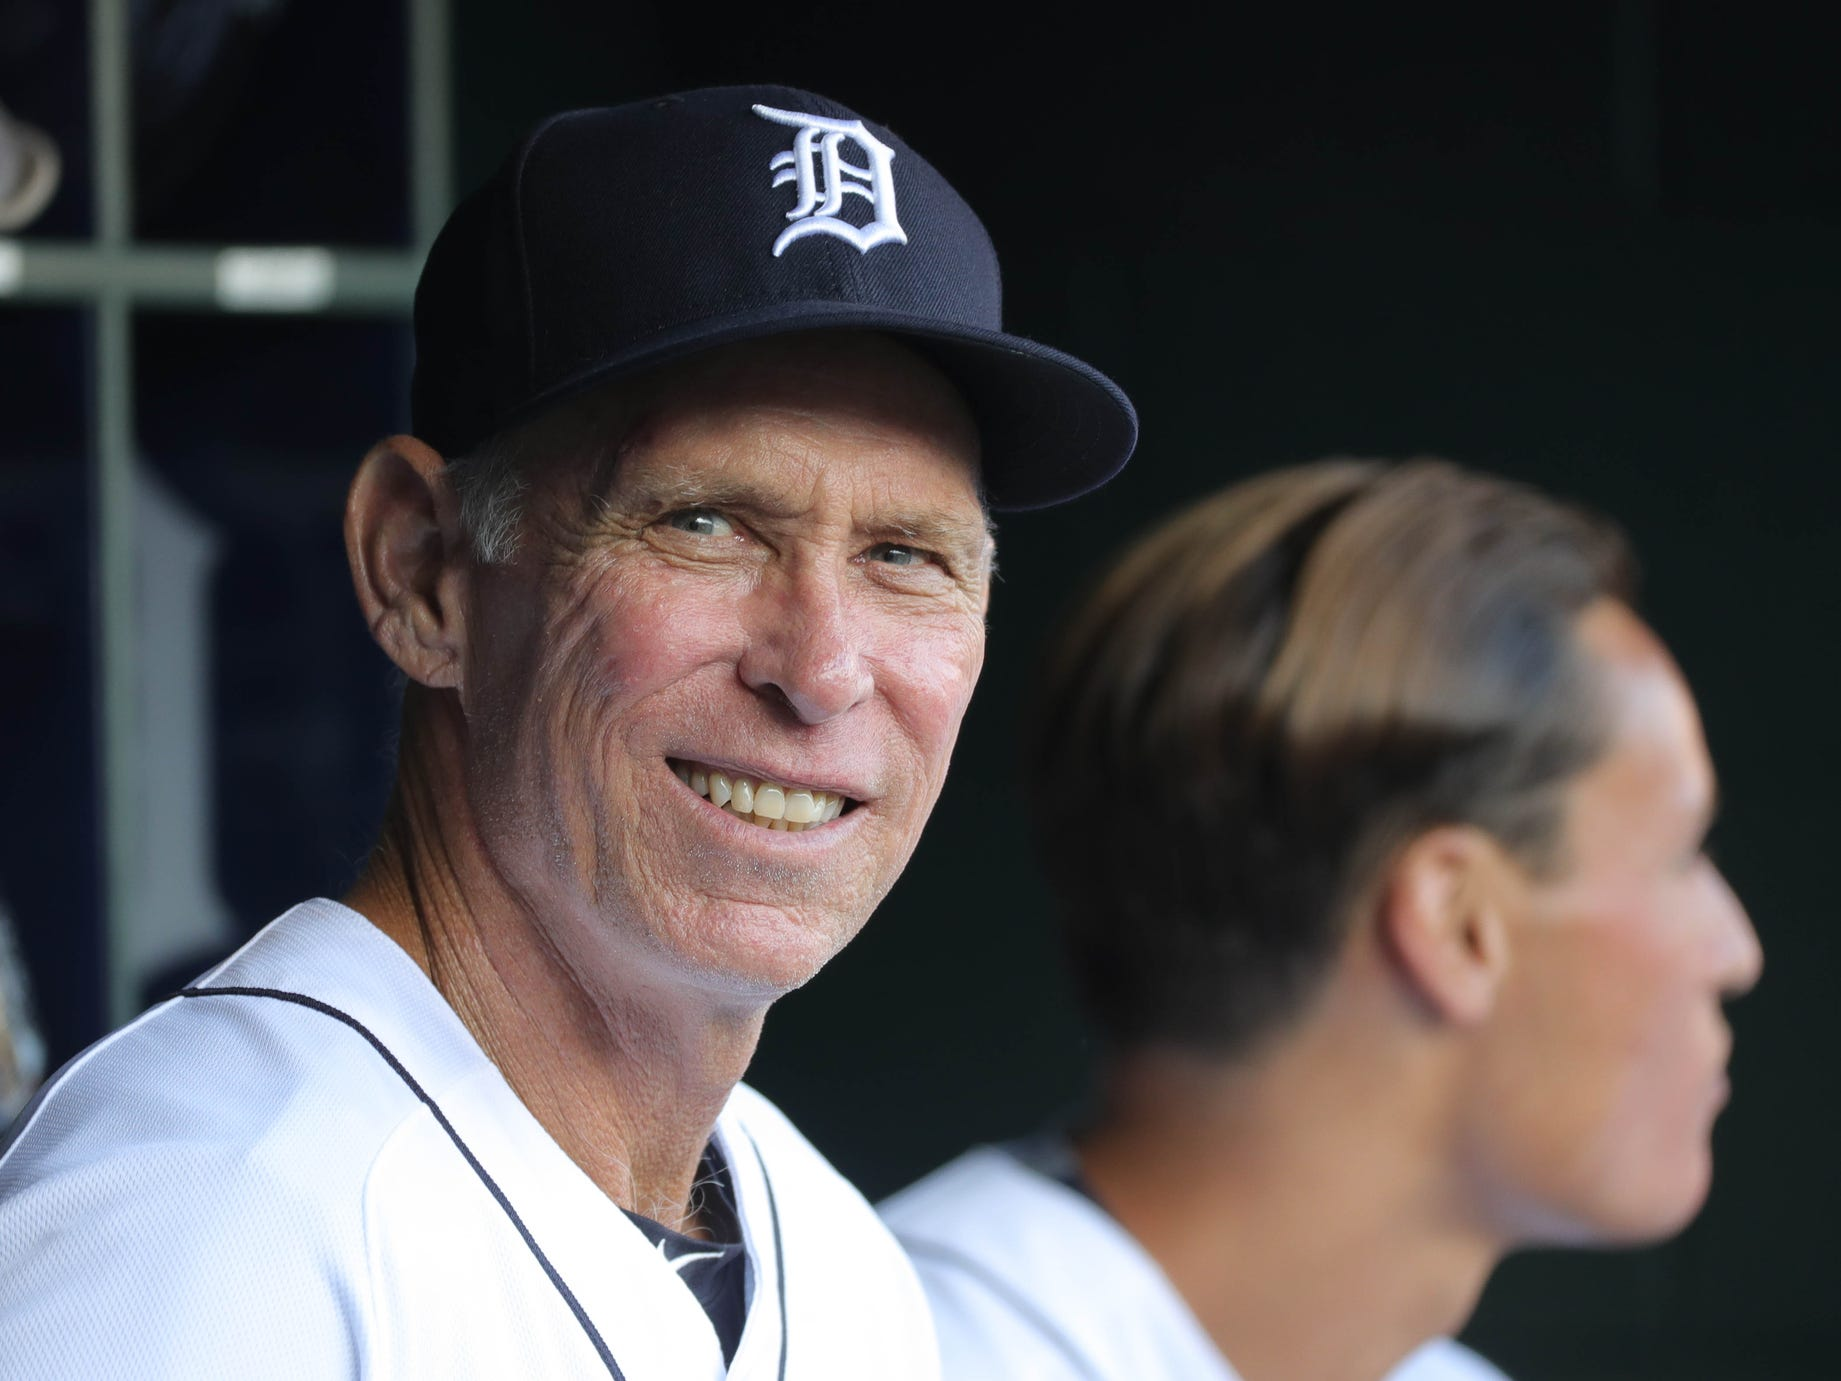 Former Detroit Tiger Alan Trammell in the dugout before action against the Cleveland Indians on Friday, June 8, 2018, at Comerica Park in Detroit.